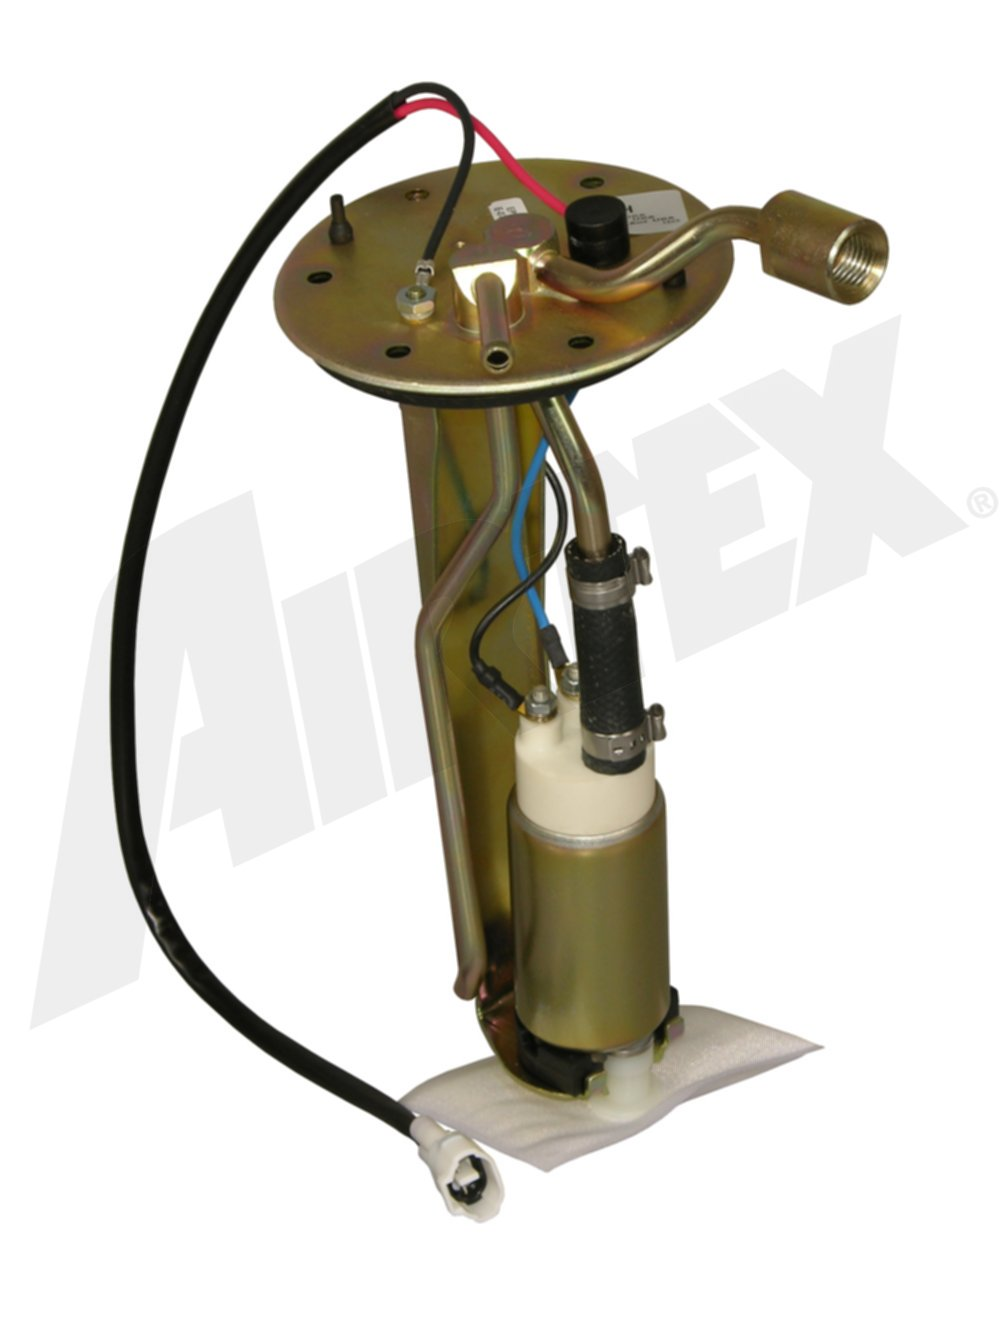 Image of Airtex Fuel Pumps E8238H Fuel Pump Hanger Assembly Fits 1989-1991 GMC Tracker